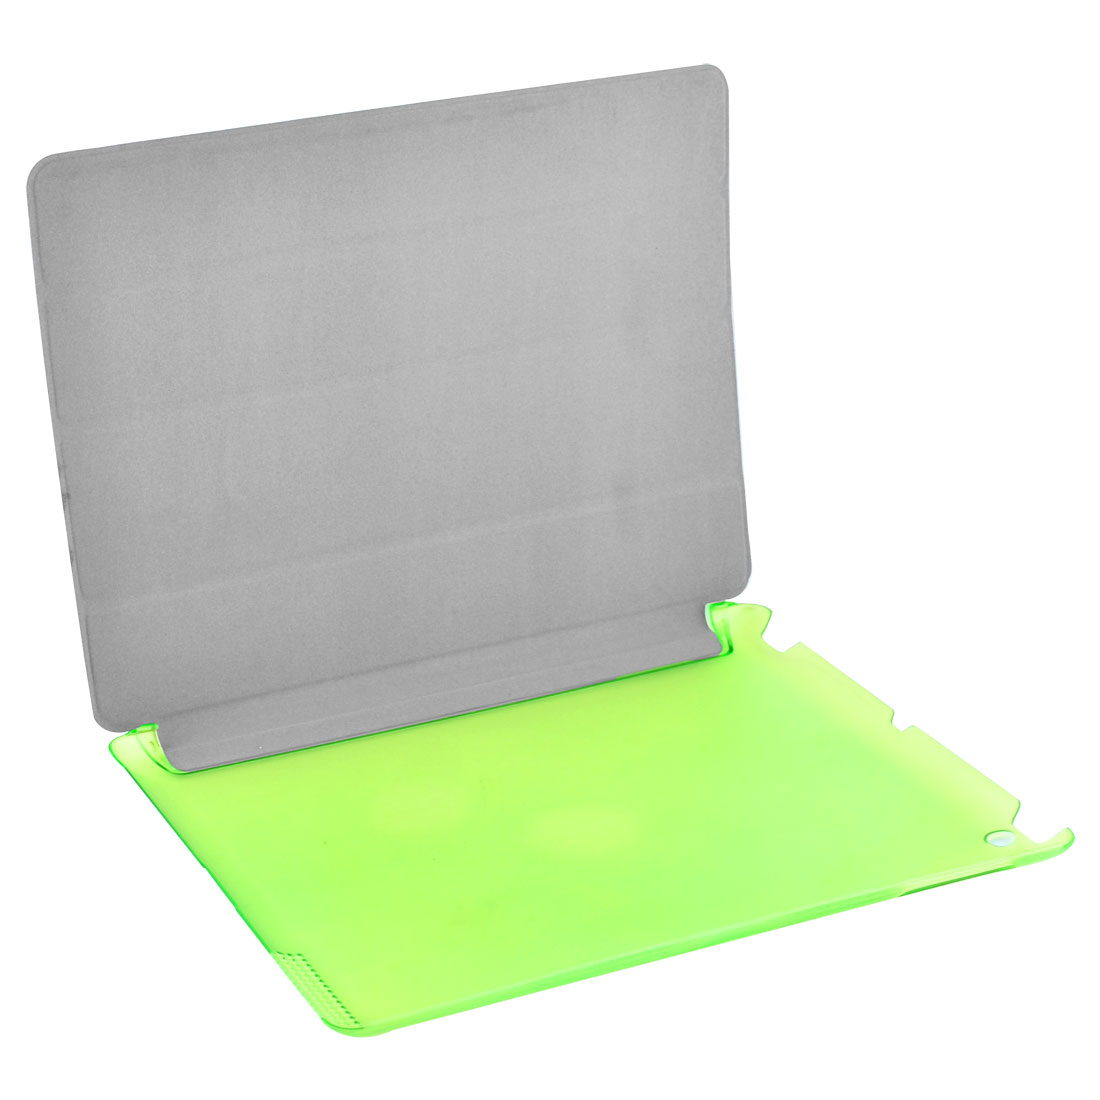 Green PU Leather Frosted Back Foldable Protect Shell Cover Case for iPad 2/3/4